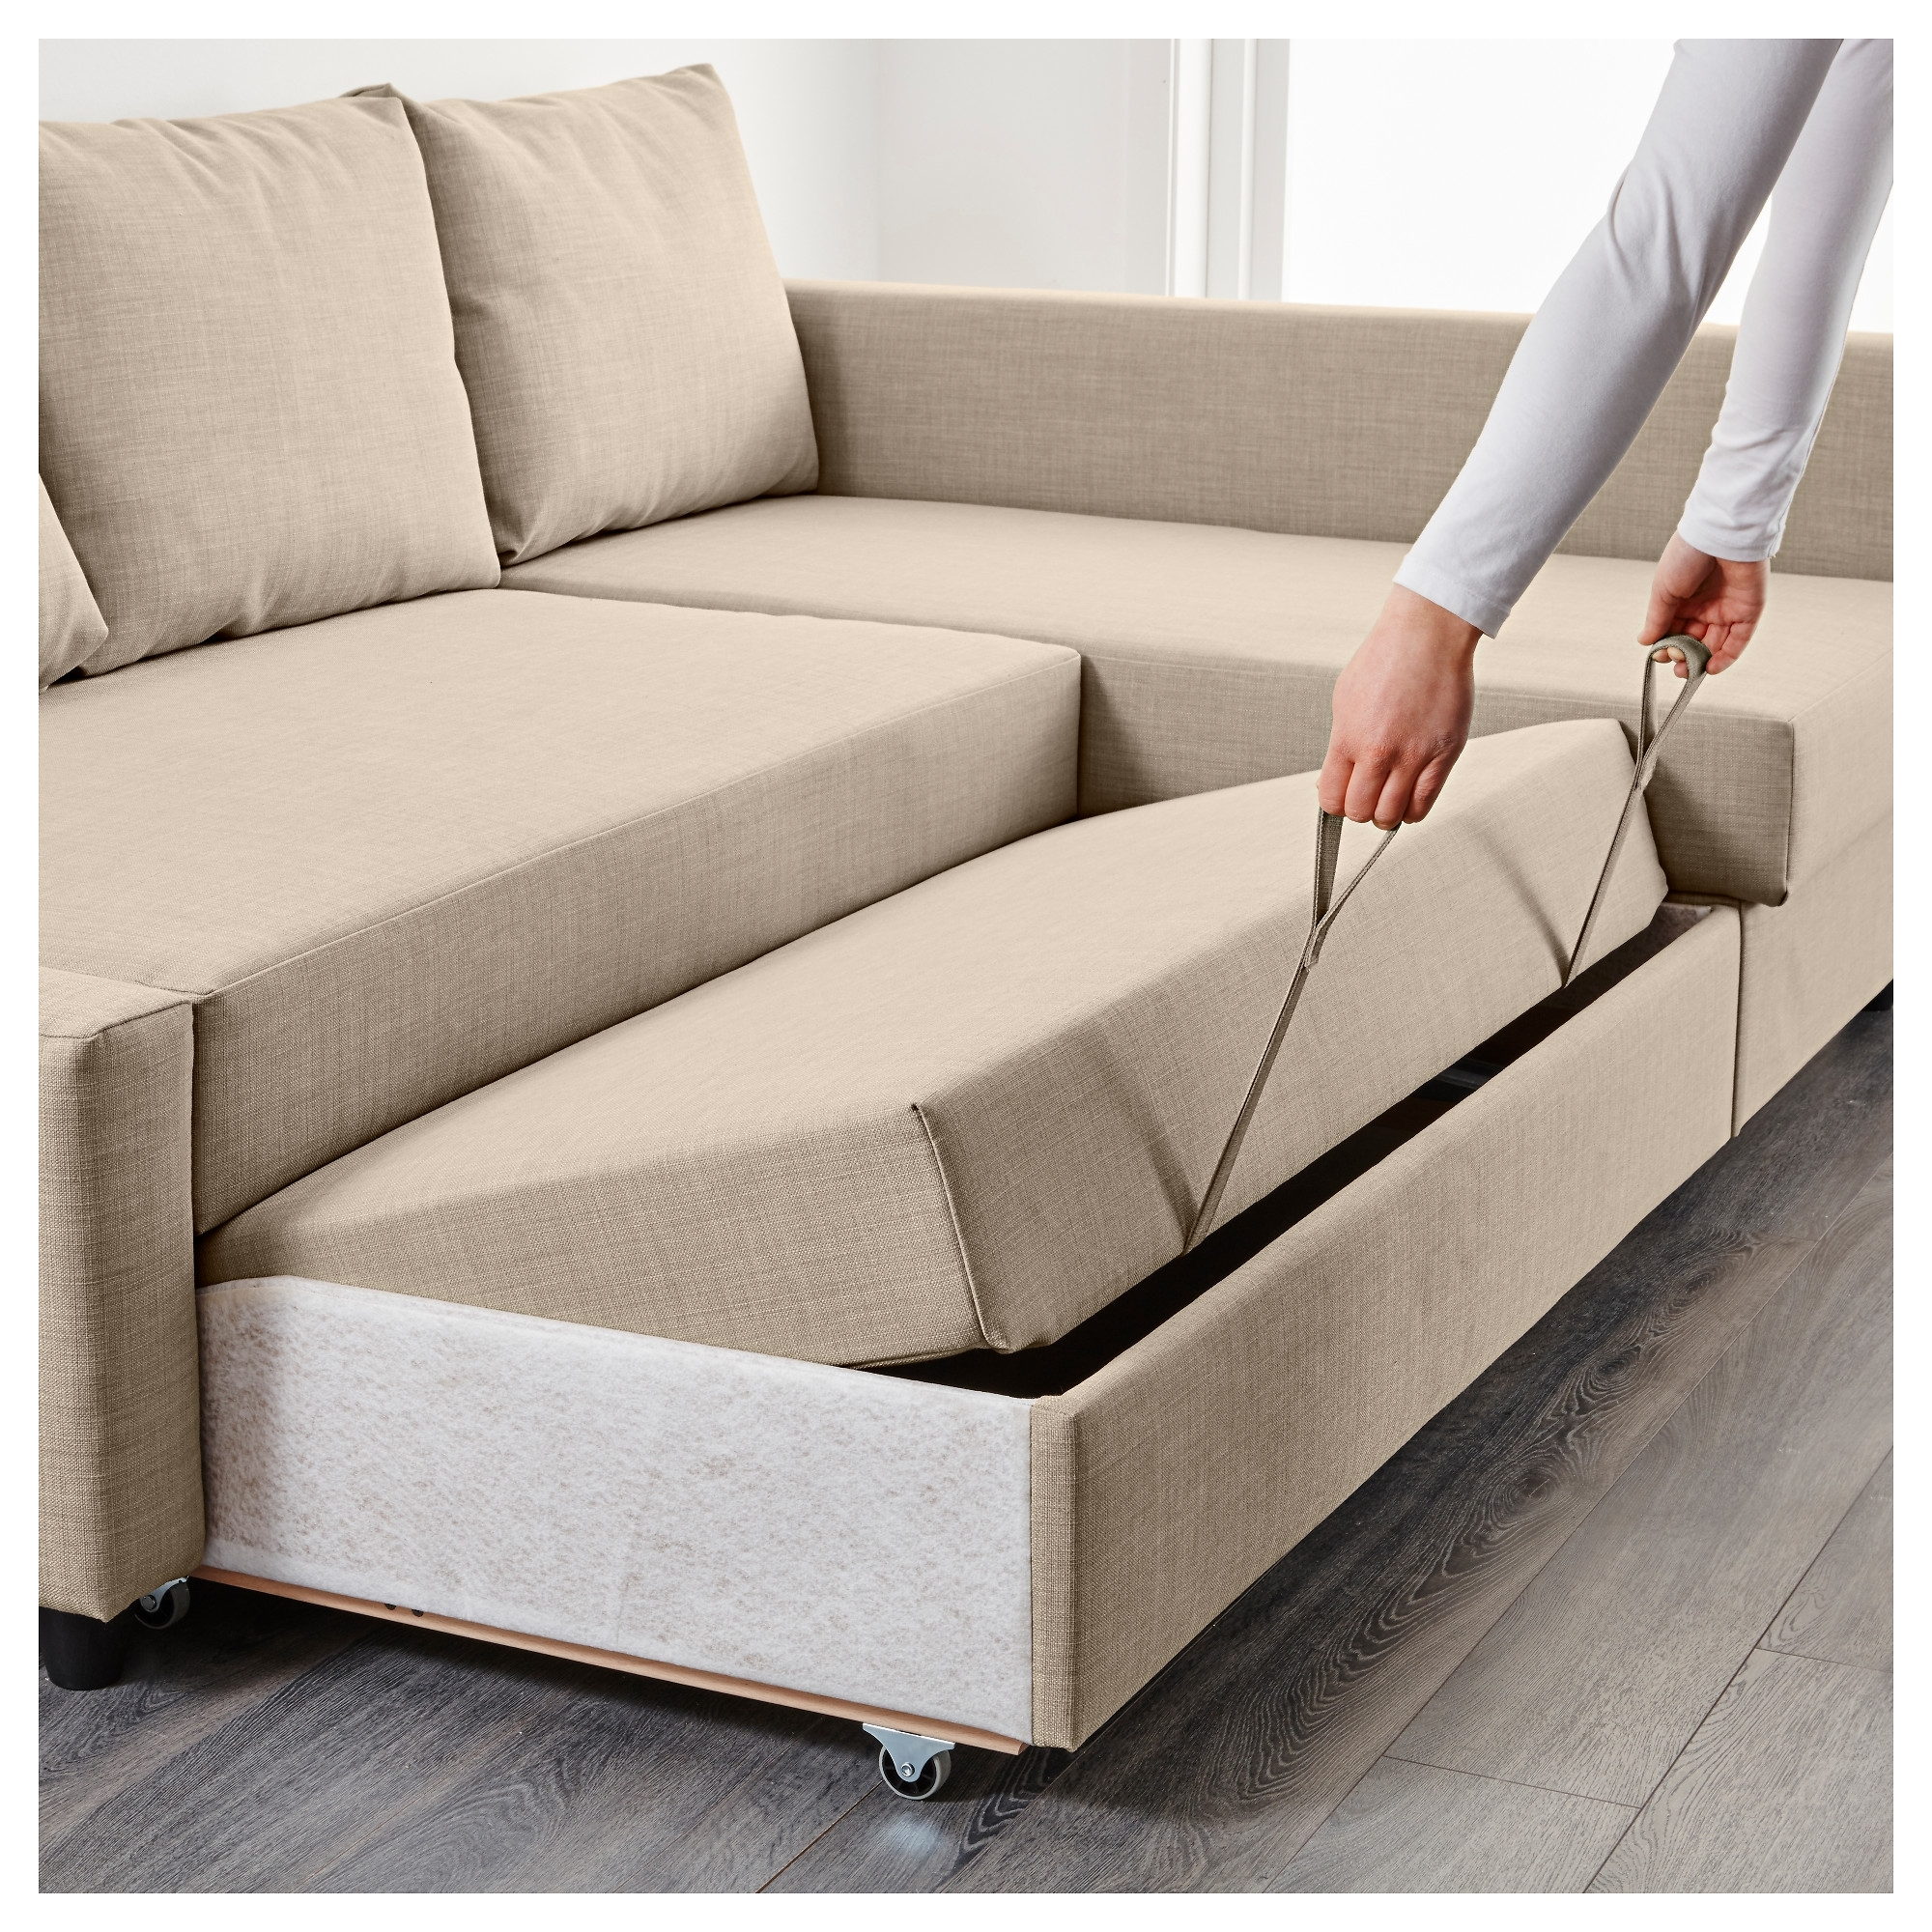 Most Up To Date Ikea Corner Sofas With Storage Pertaining To Friheten Corner Sofa Bed With Storage Skiftebo Beige – Ikea (View 13 of 20)